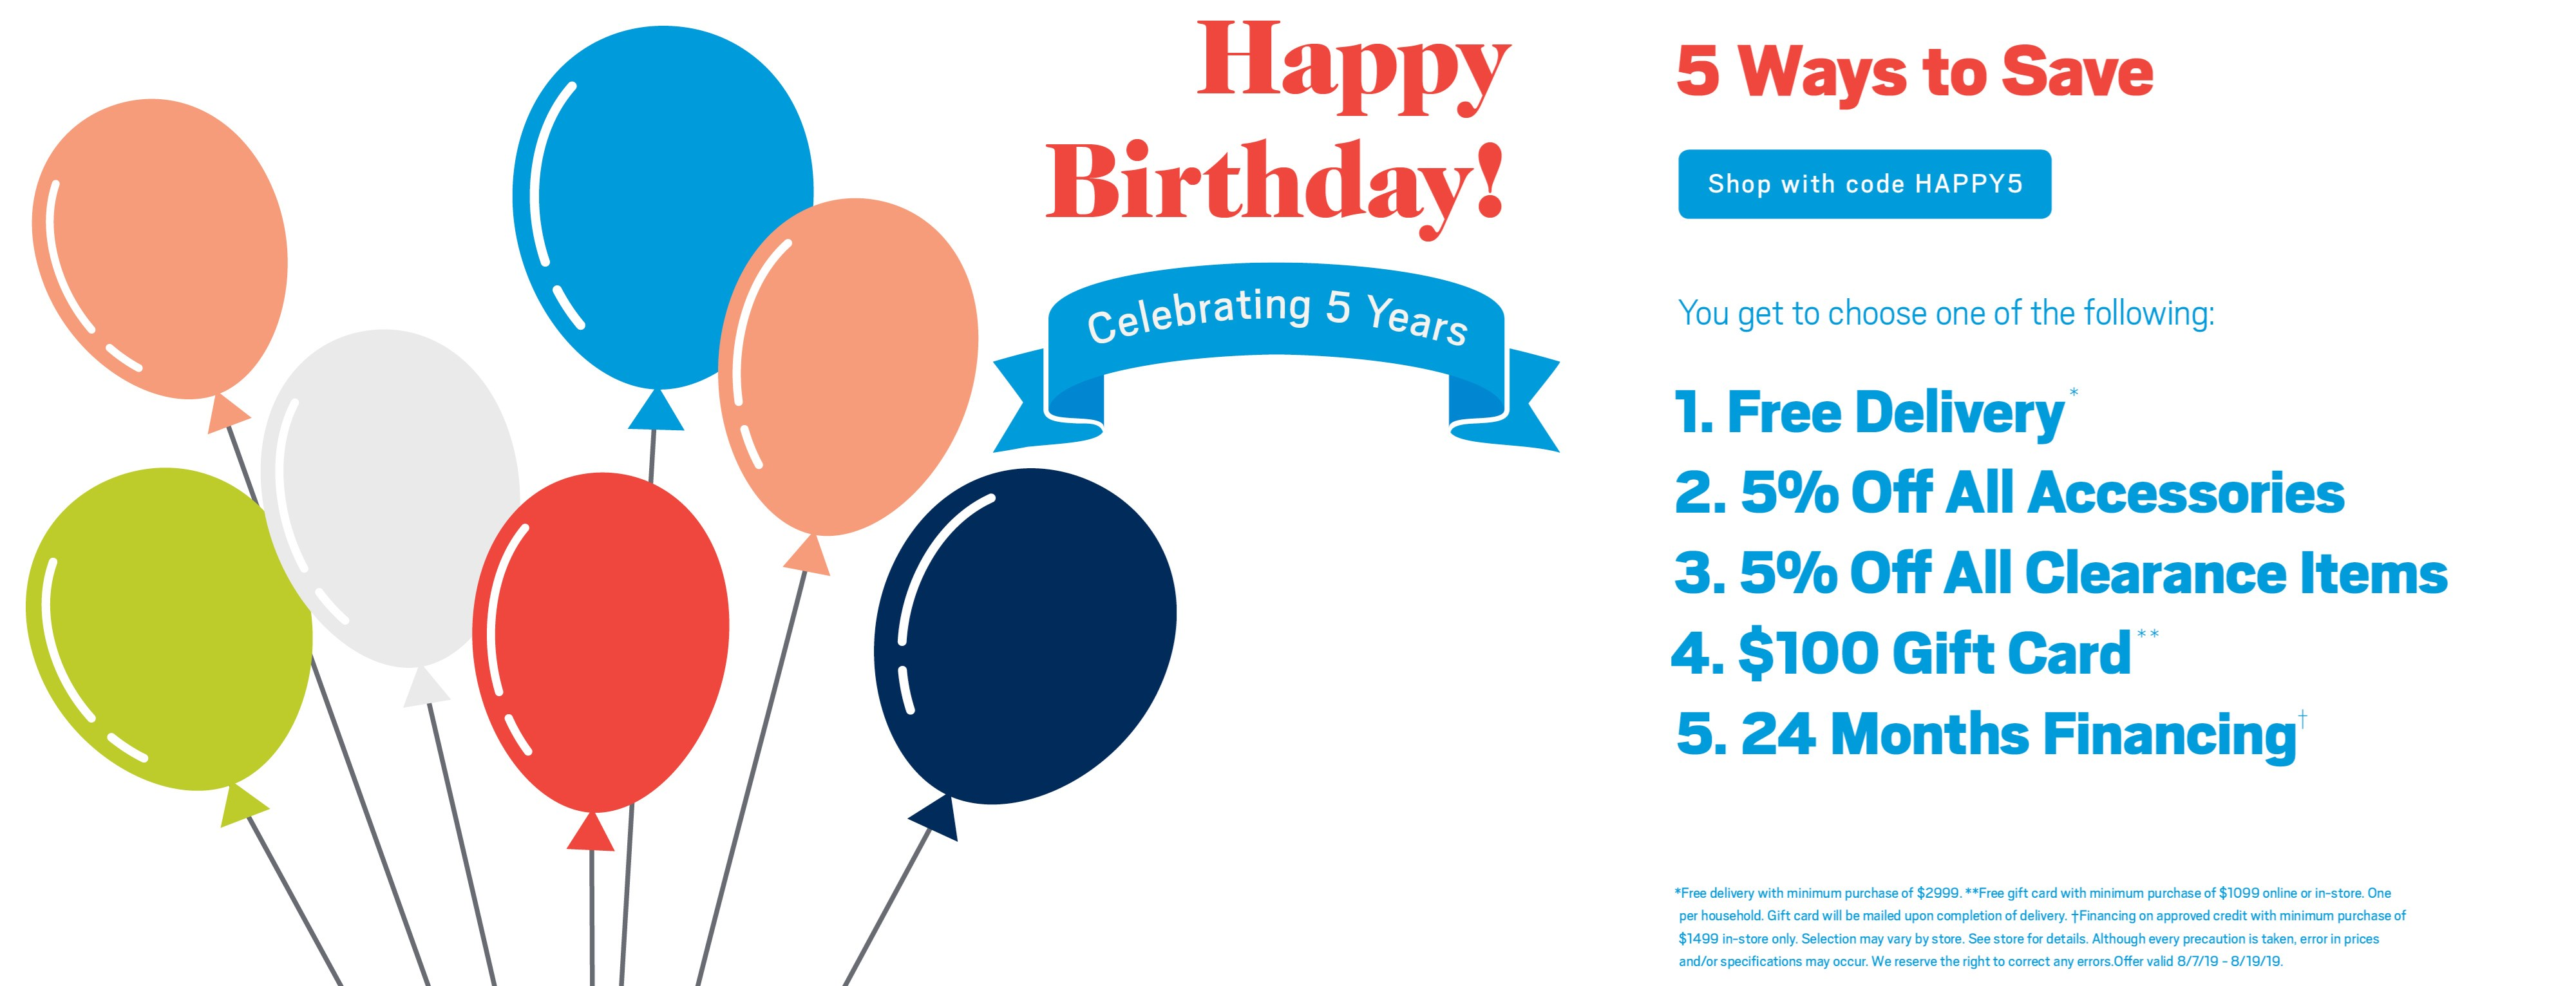 Five ways to save; use code HAPPY5. See store for details.